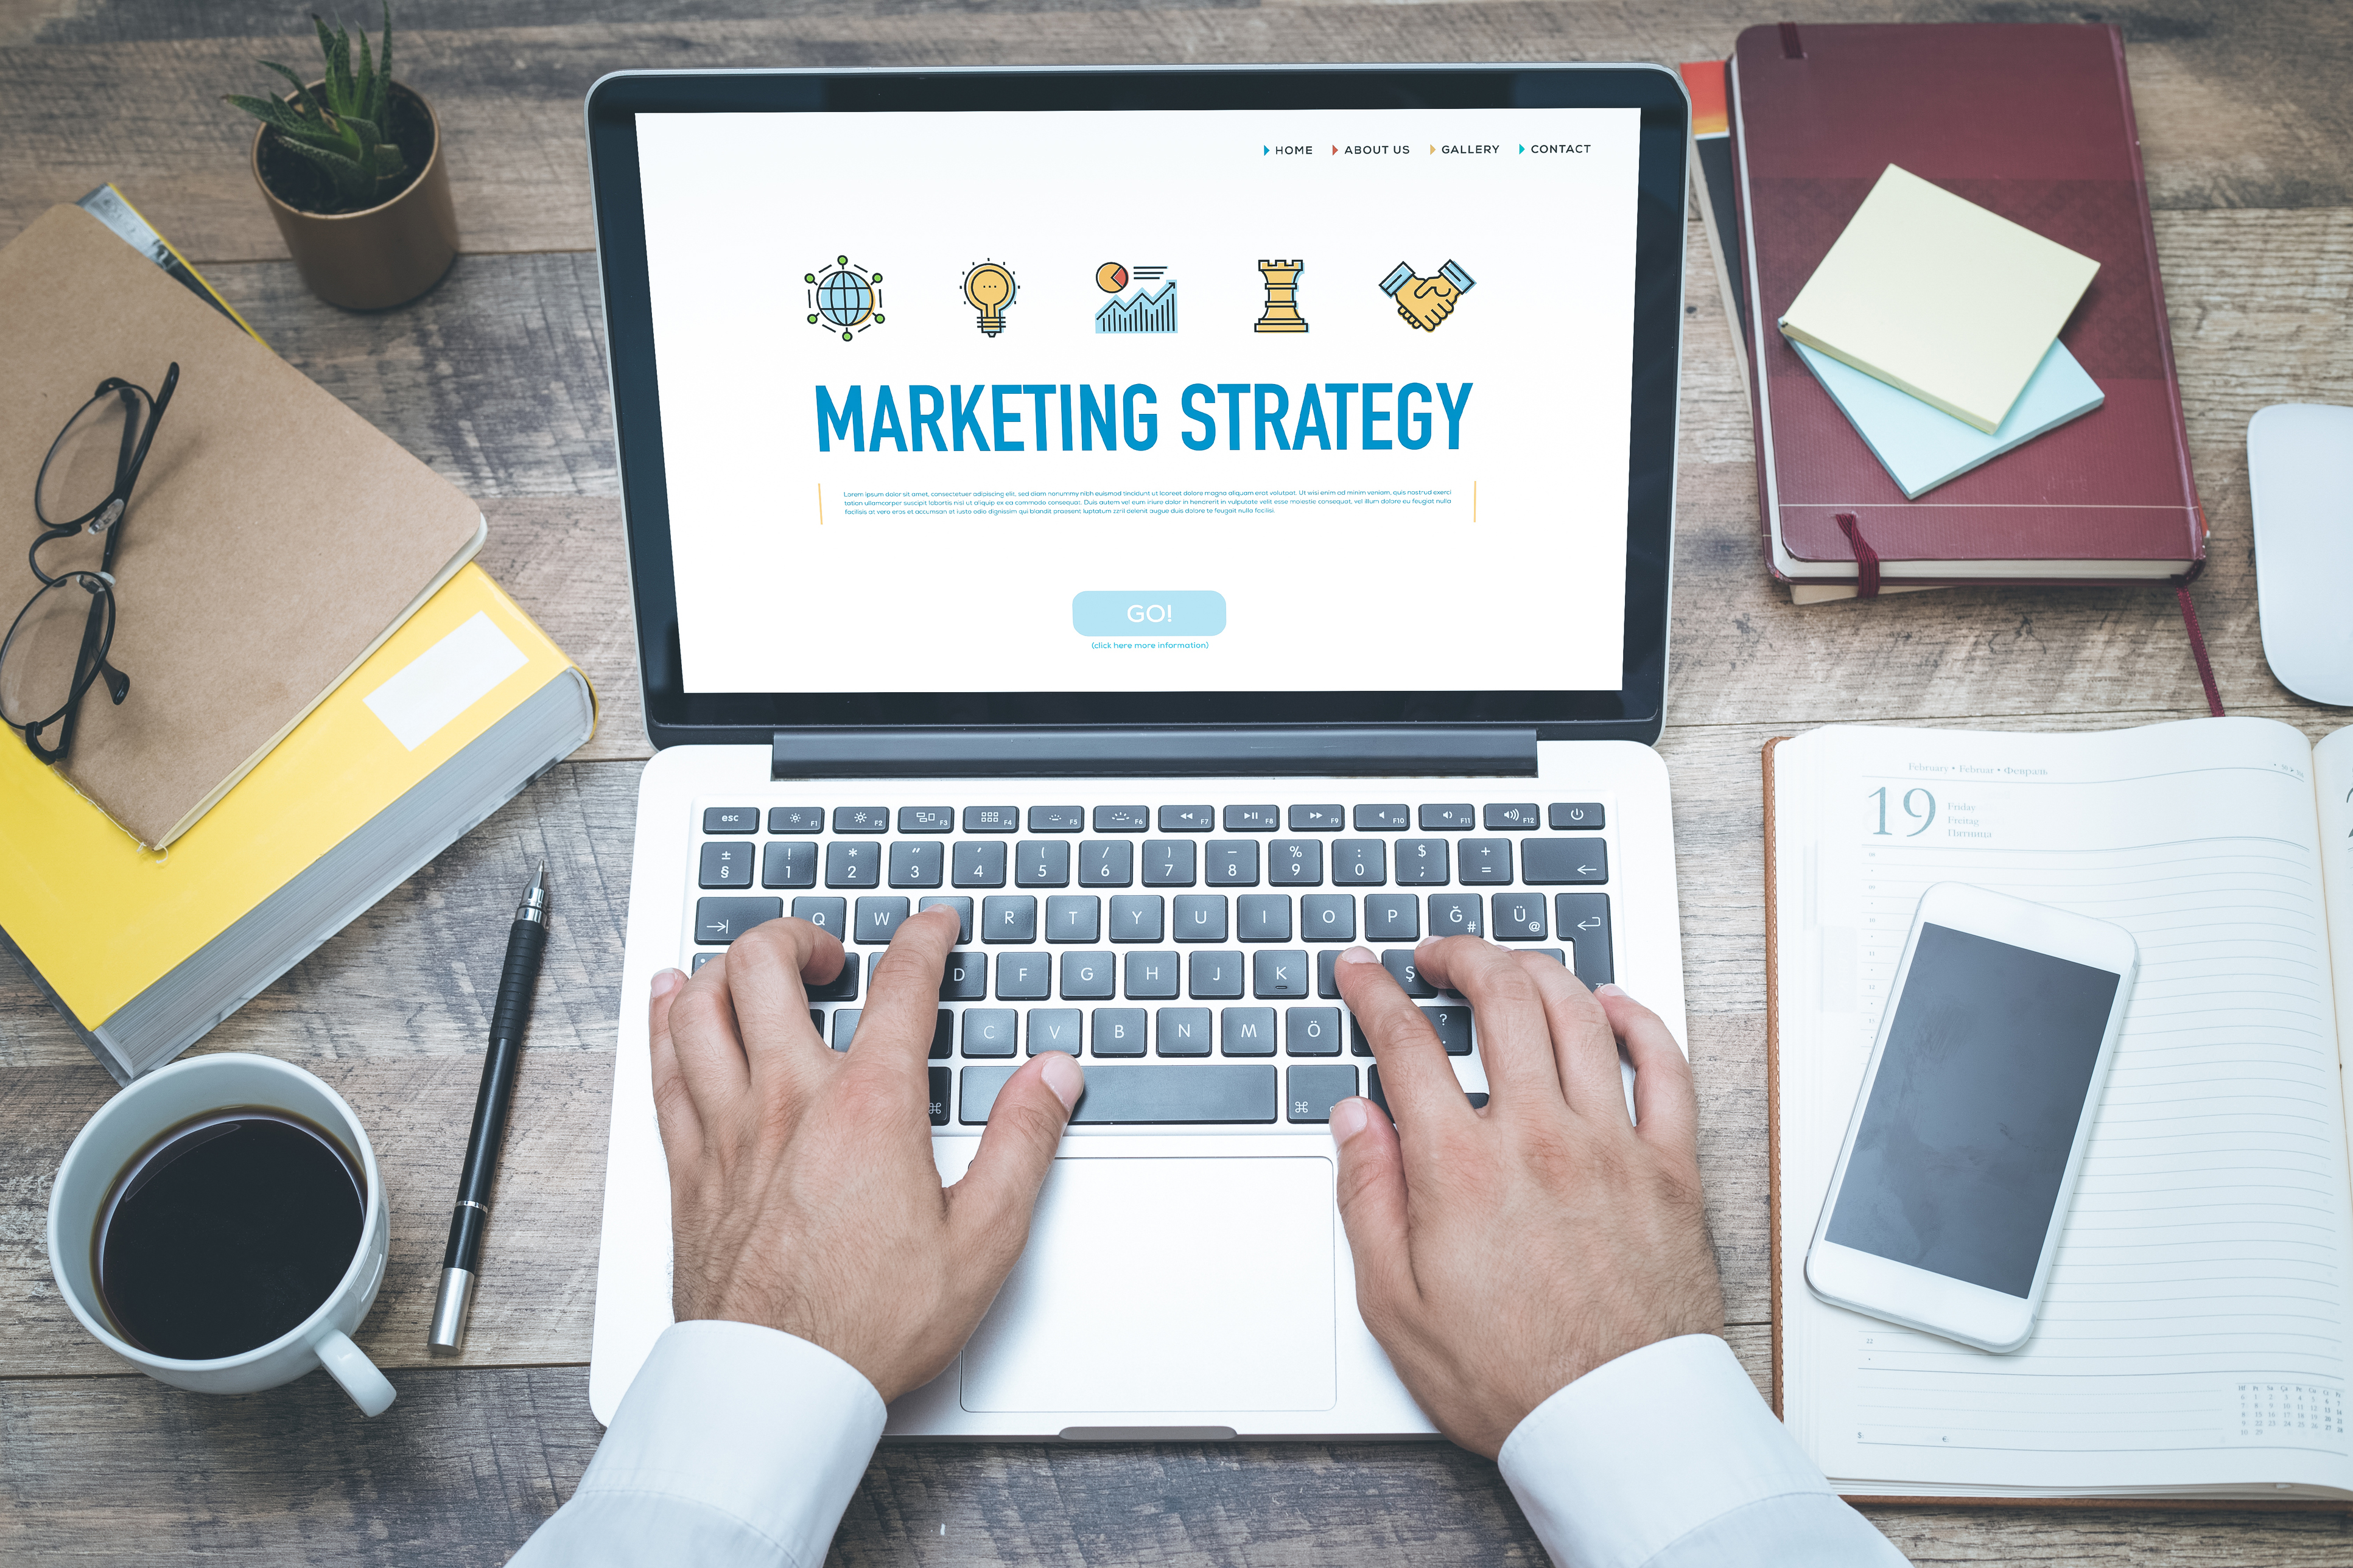 Marketing Strategy and Customer Experience Marketing